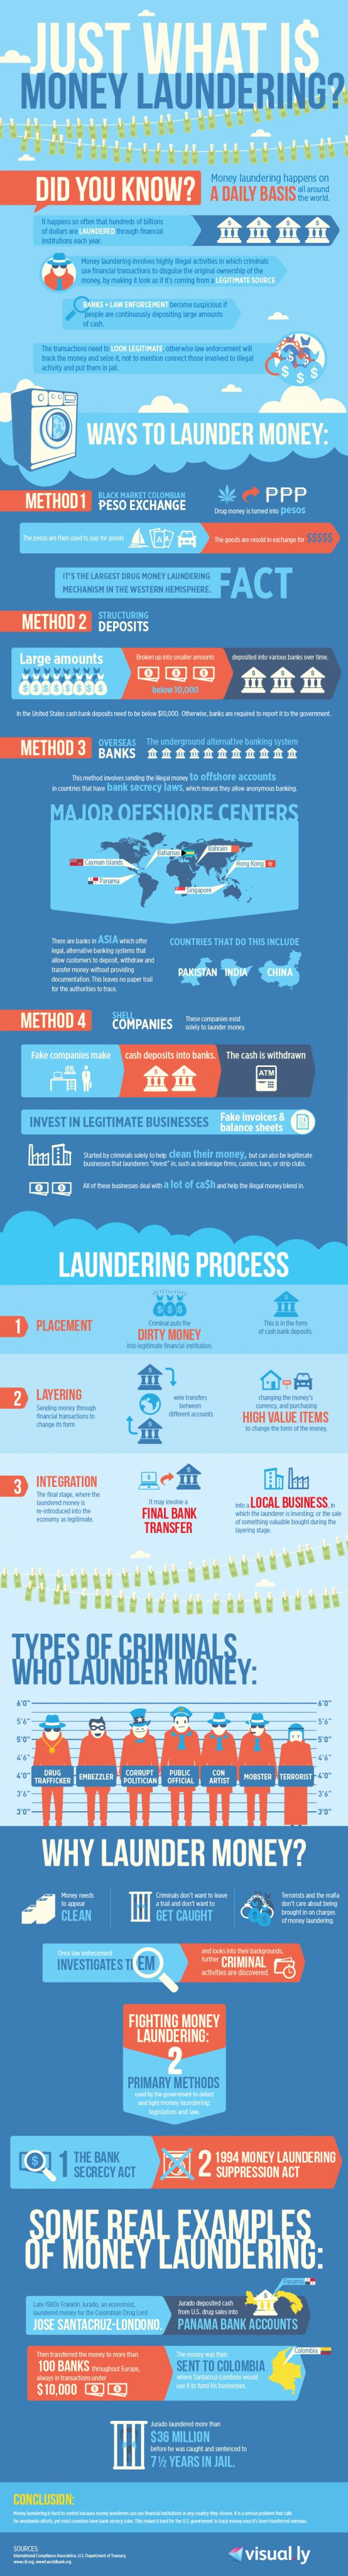 "Just What Is Money Laundering? Infographic (Too bad they didn't have this in the movie ""Office Space""!)"